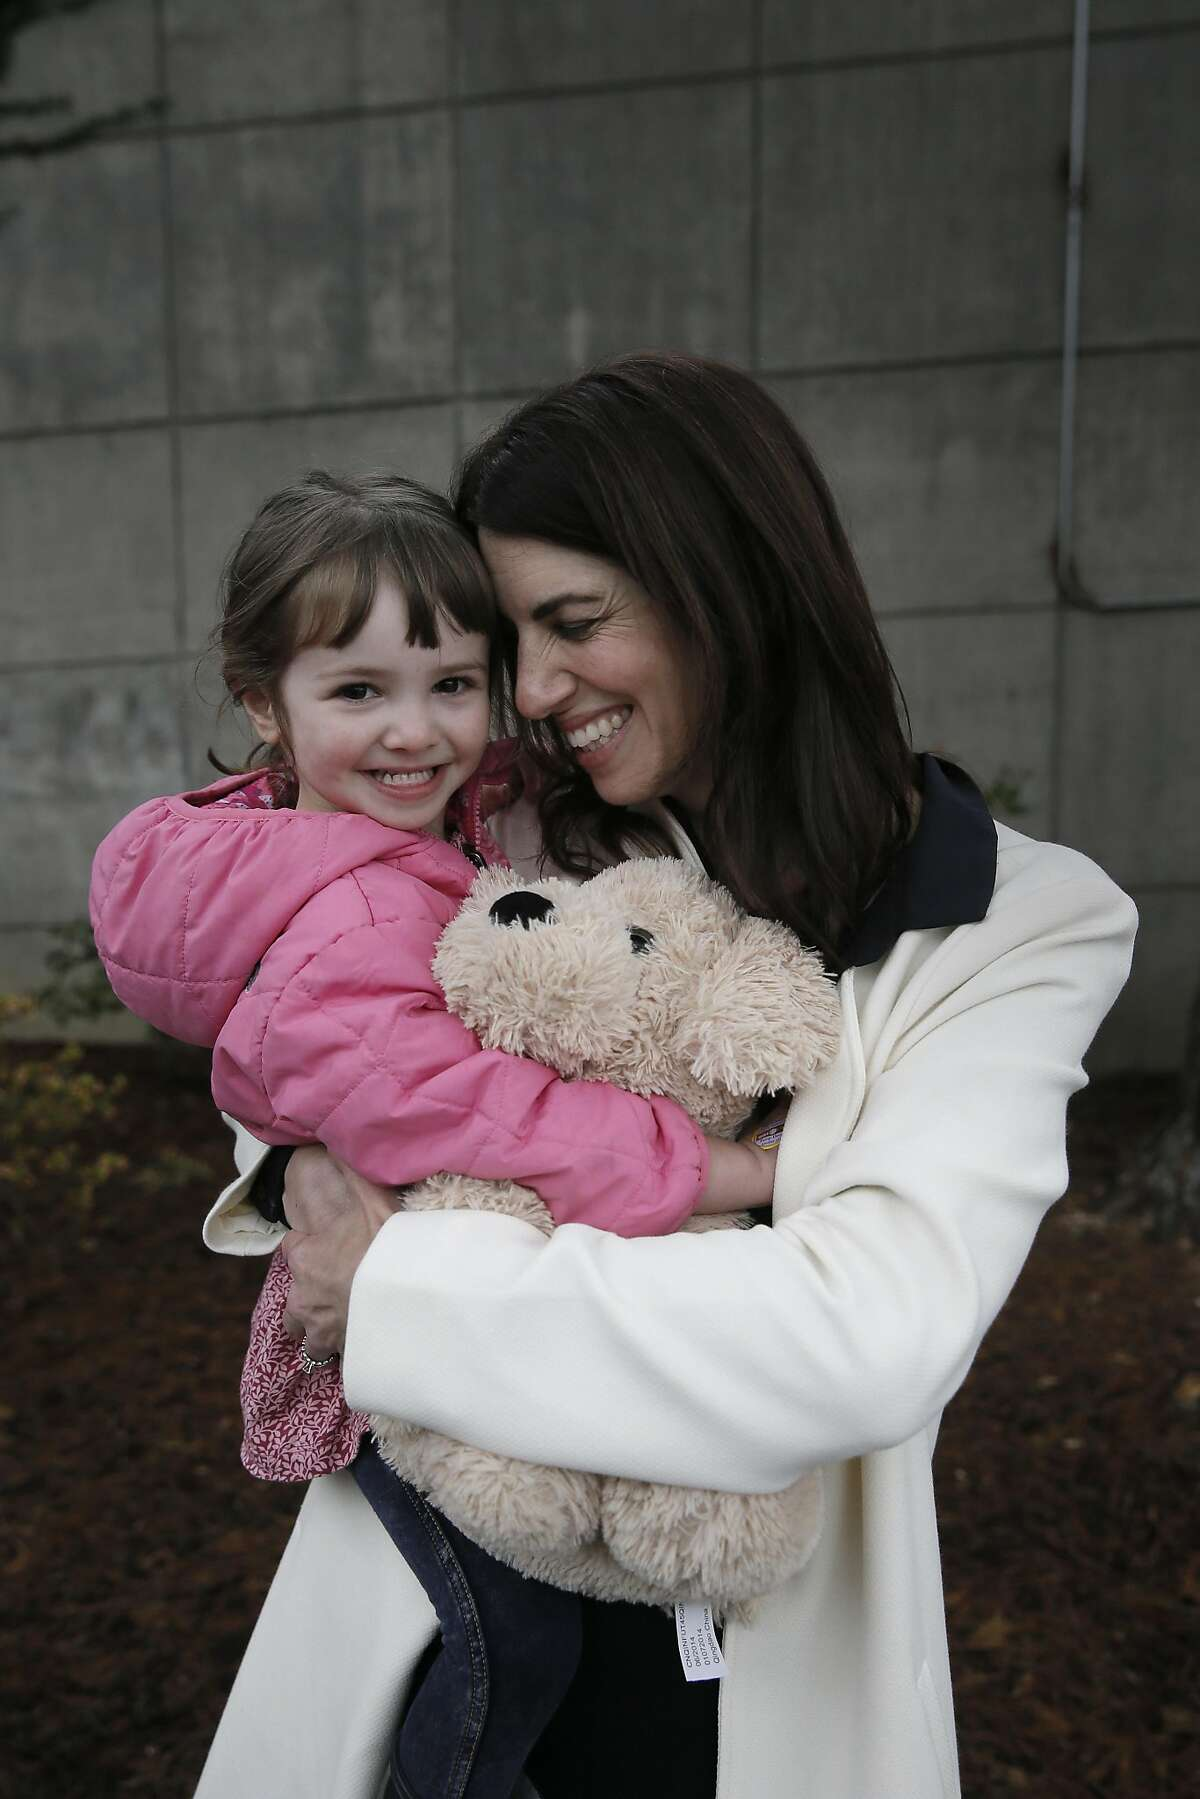 Hillary Ronen with her 3-year-old daughter Maelle Ronen Ugarte, as she prepares to announce her candidacy for San Francisco Supervisor, district 9, in front of St. Luke's Hospital in the Mission in San Francisco, Calif. on Thurs. January 14, 2016.